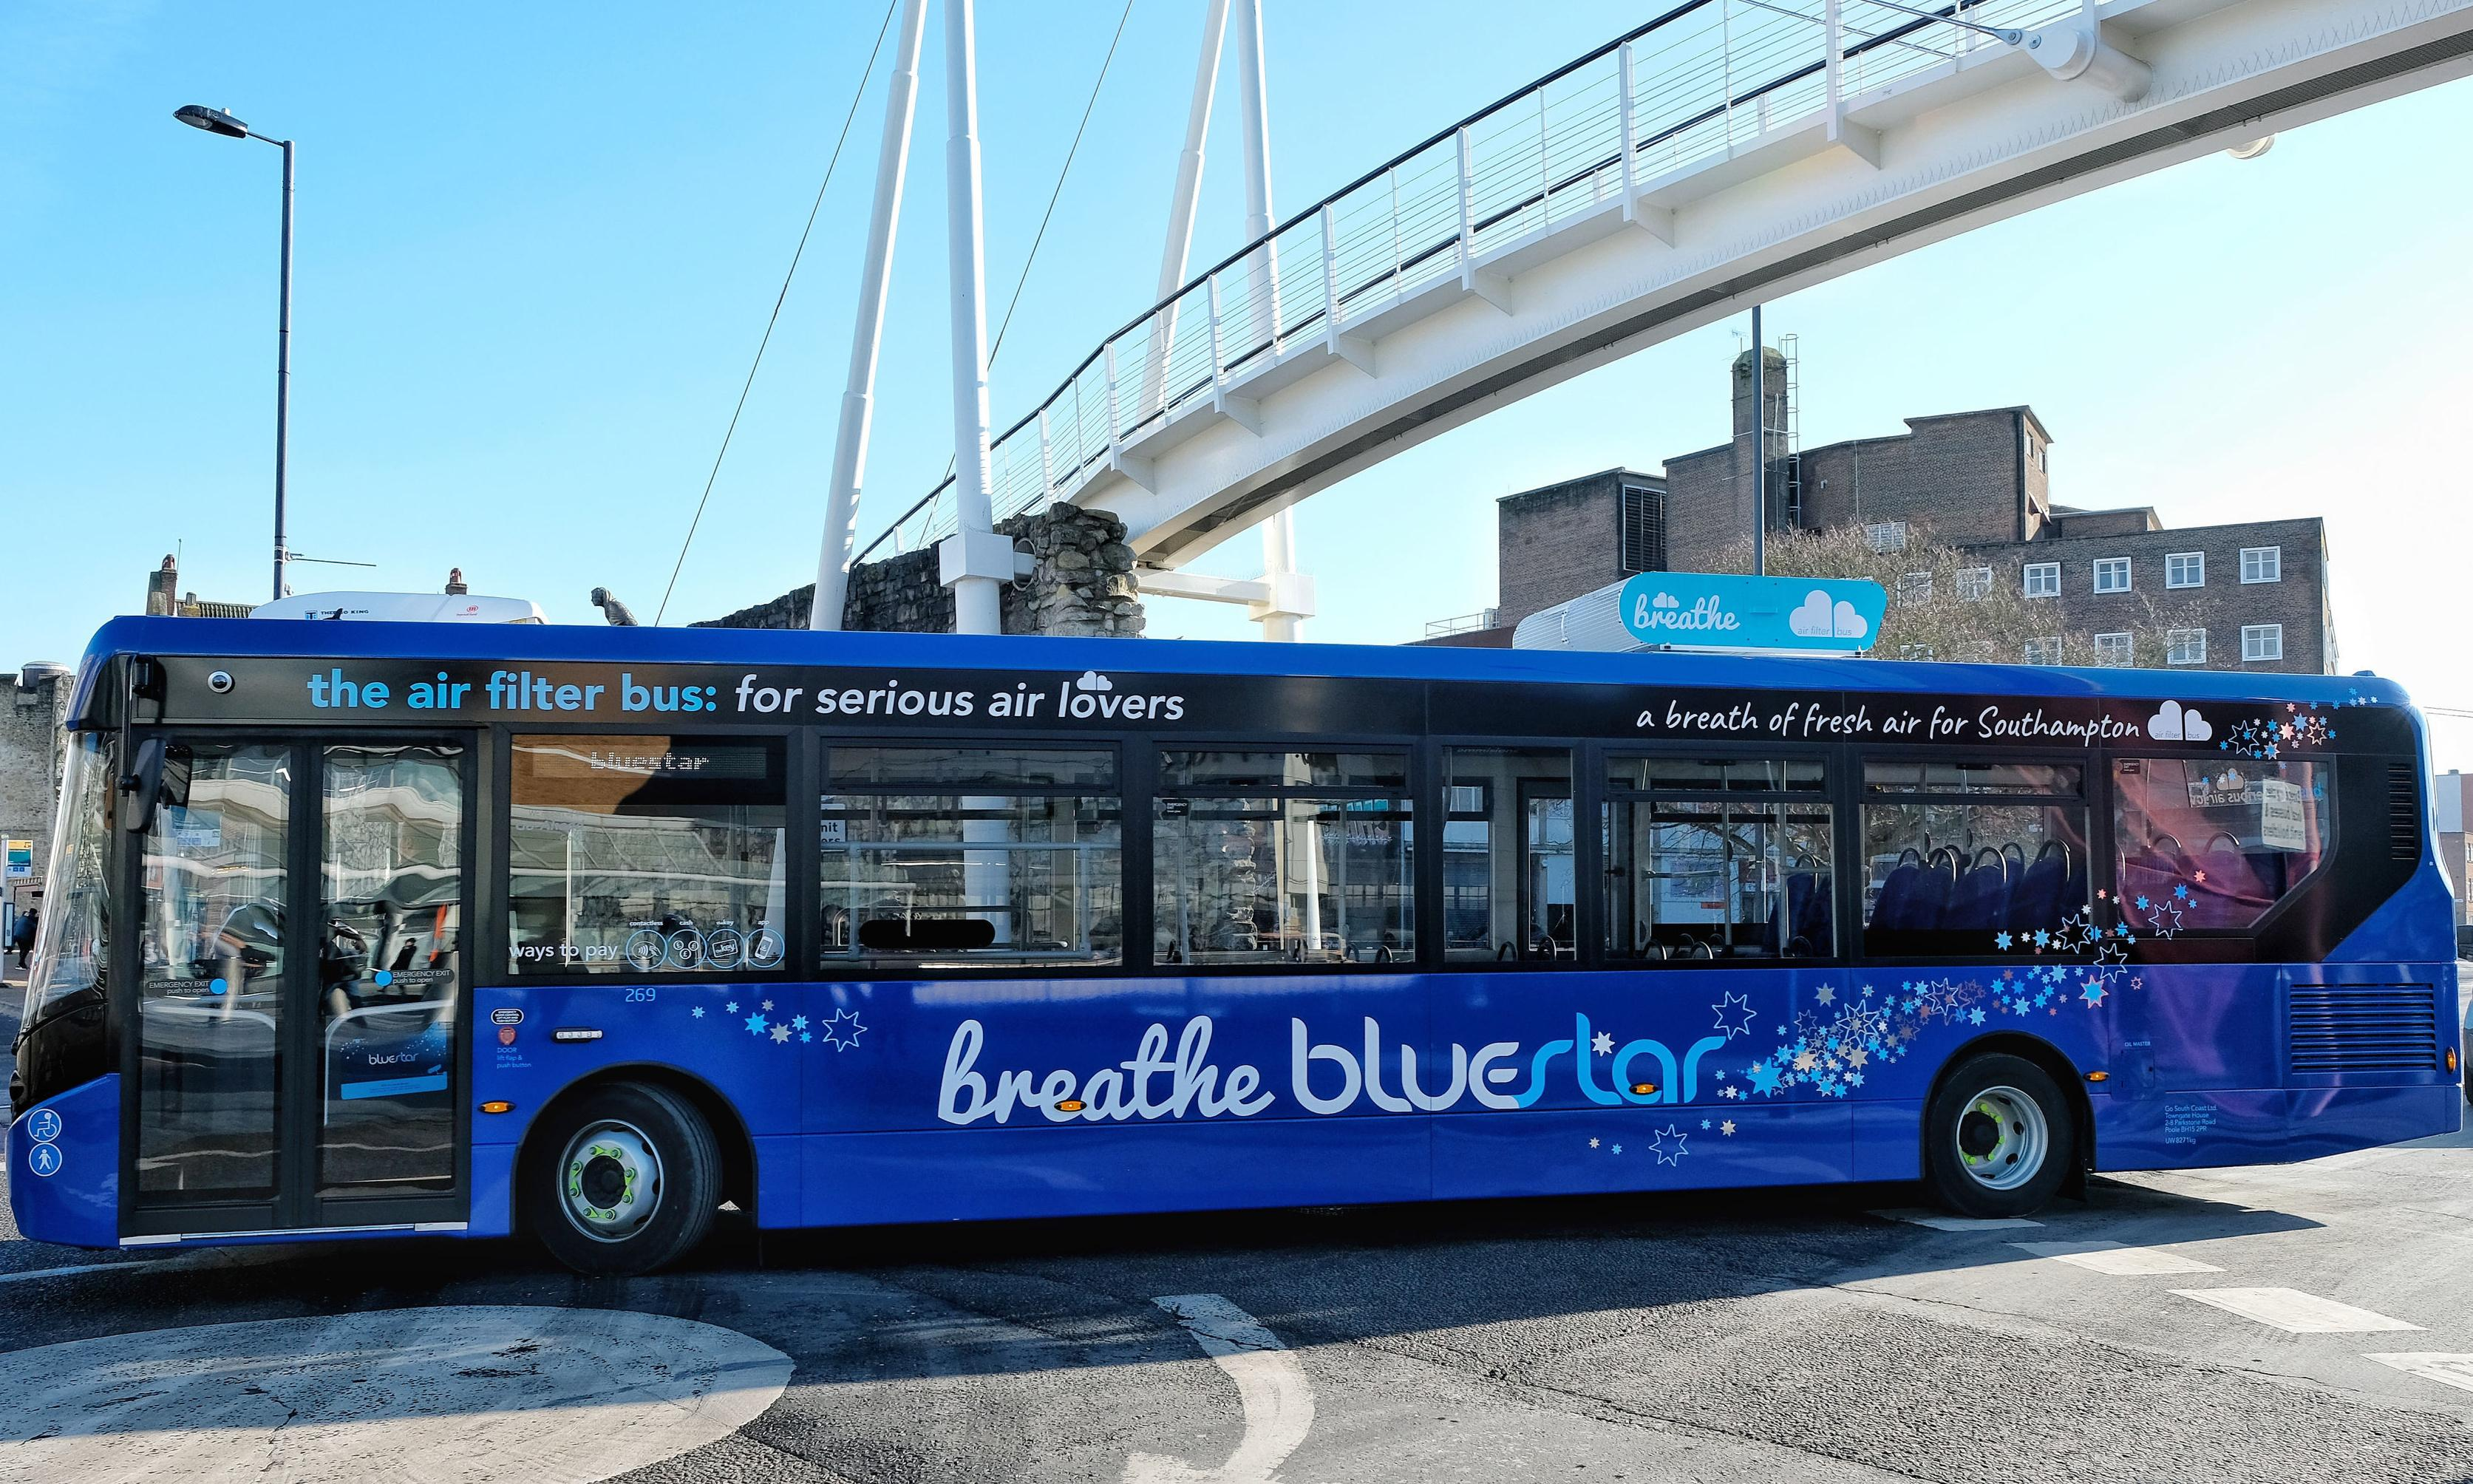 Air-filtering bus to launch across six regions in the UK